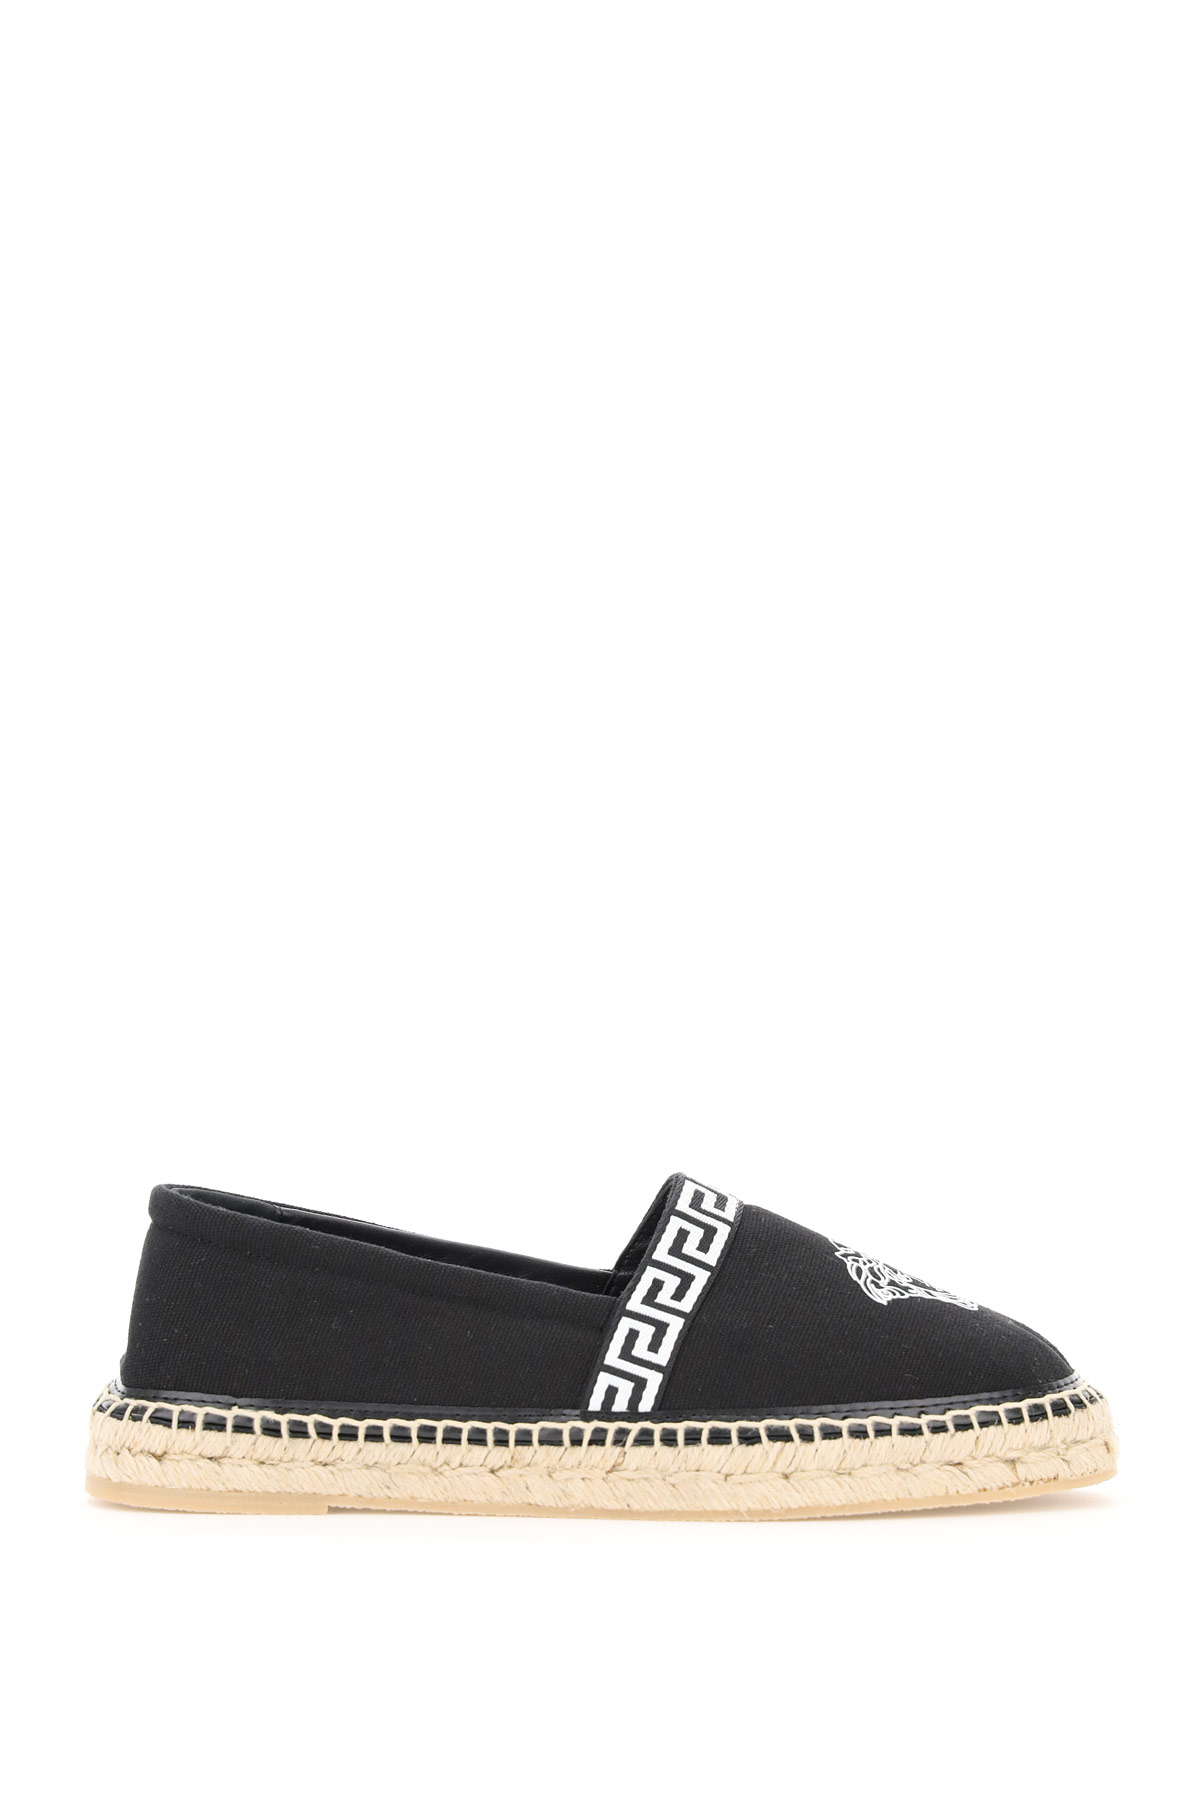 Versace CANVAS ESPADRILLES WITH MEDUSA